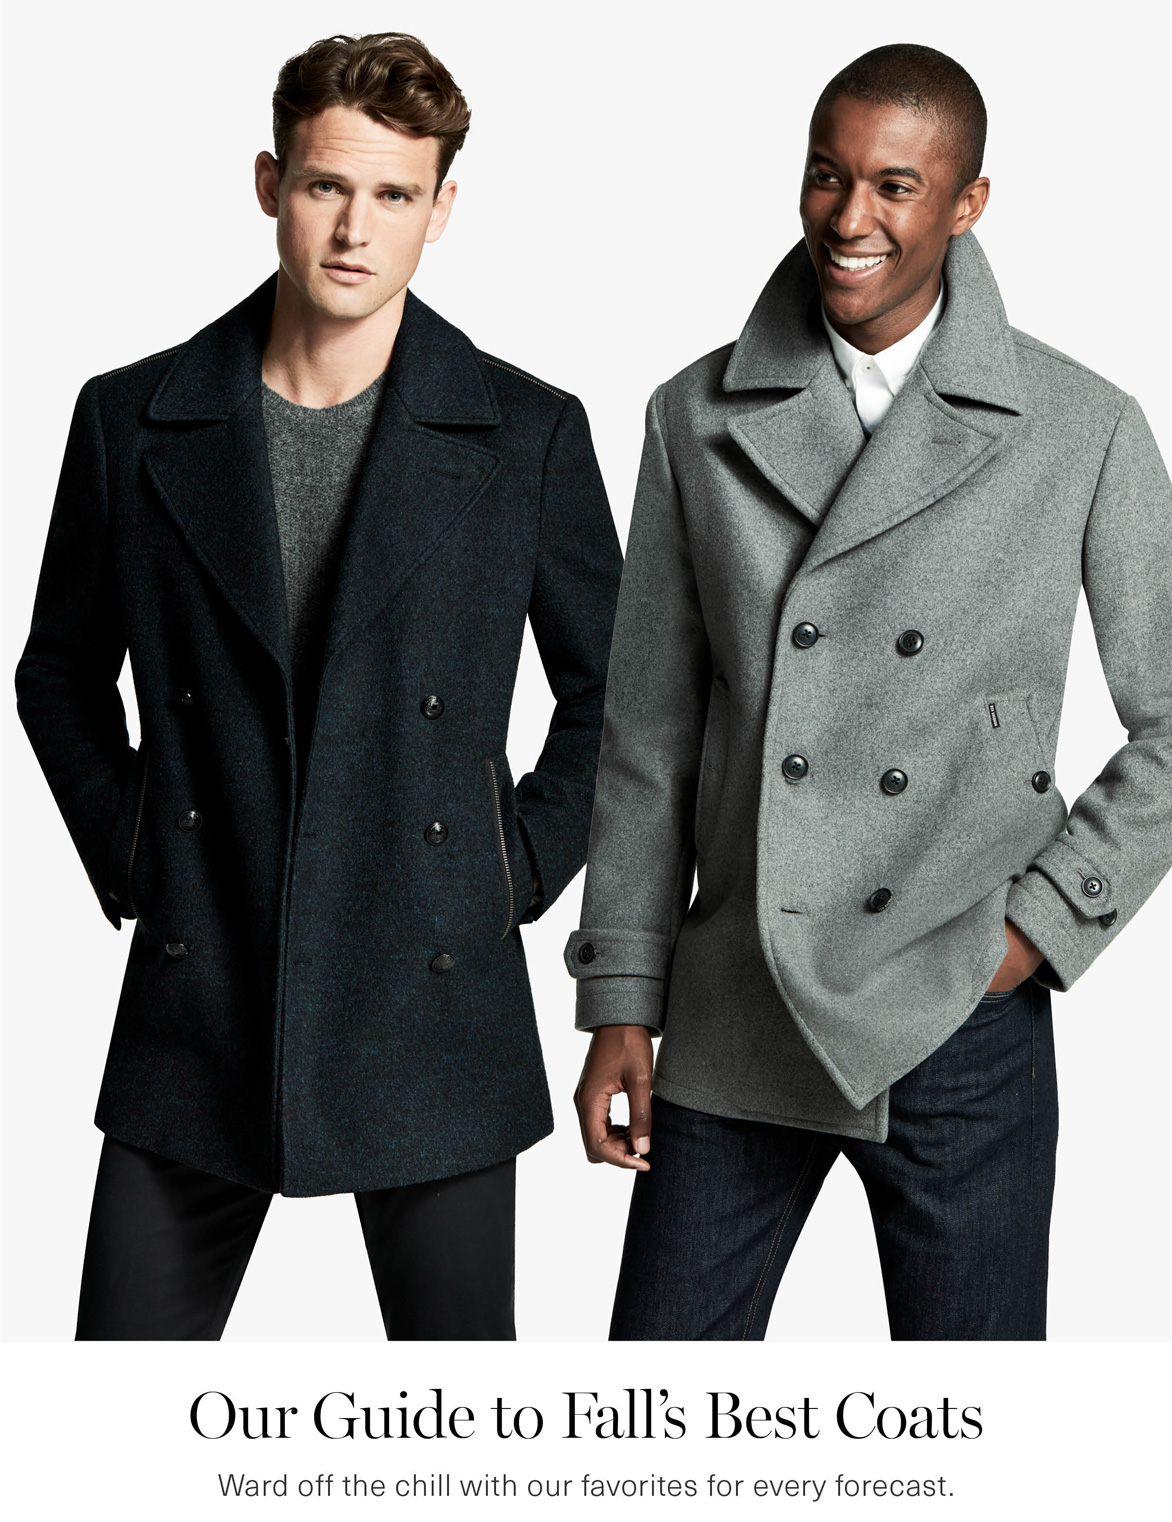 Men's Fall's Best Coats